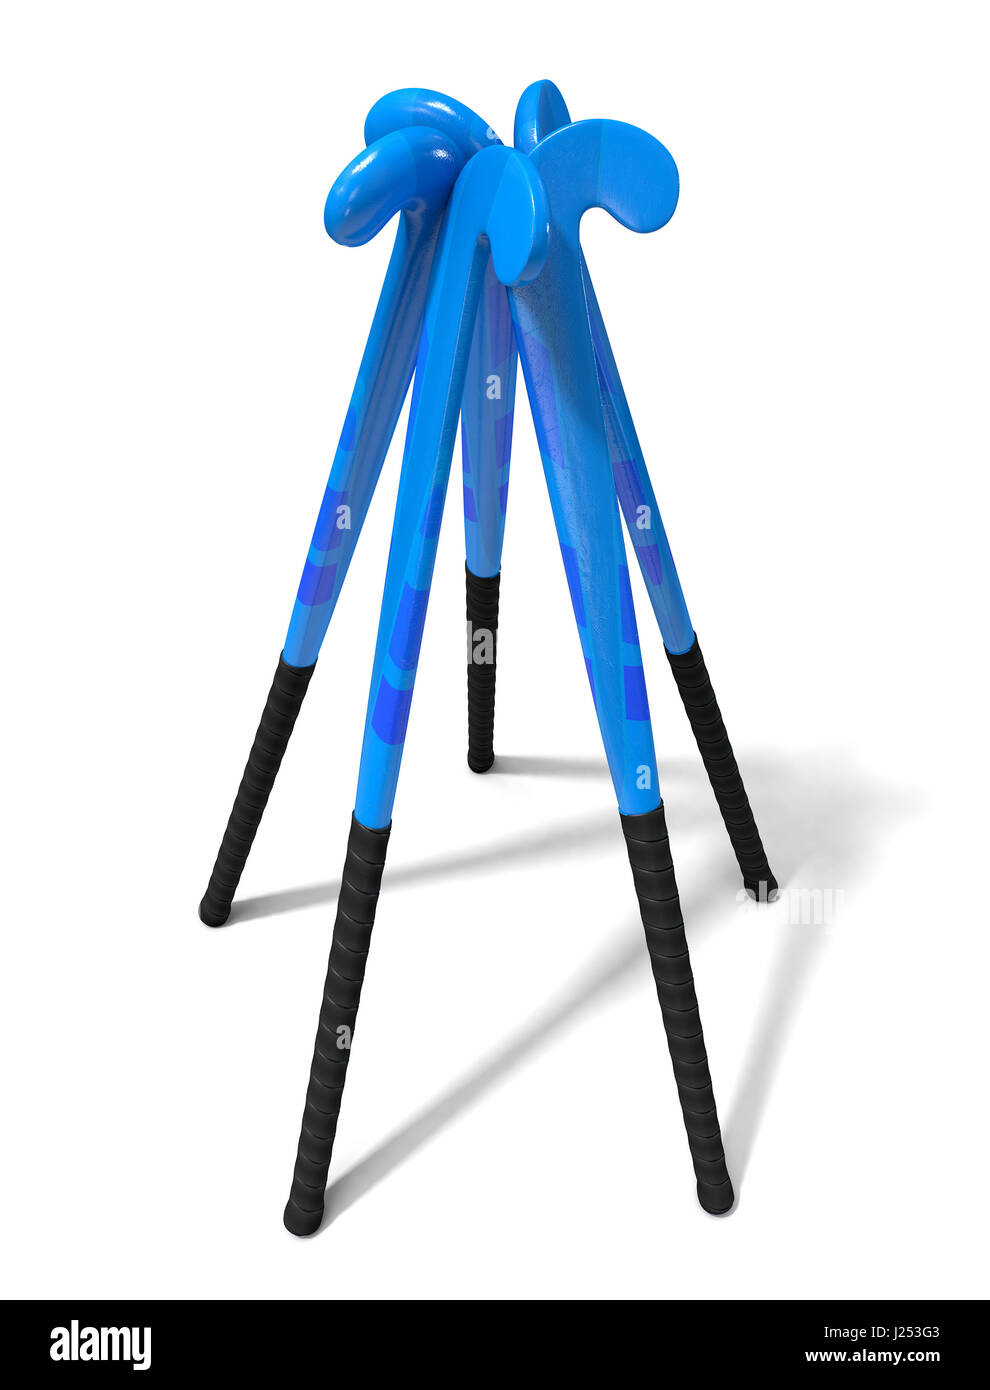 field hockey stick cut out stock images u0026 pictures alamy